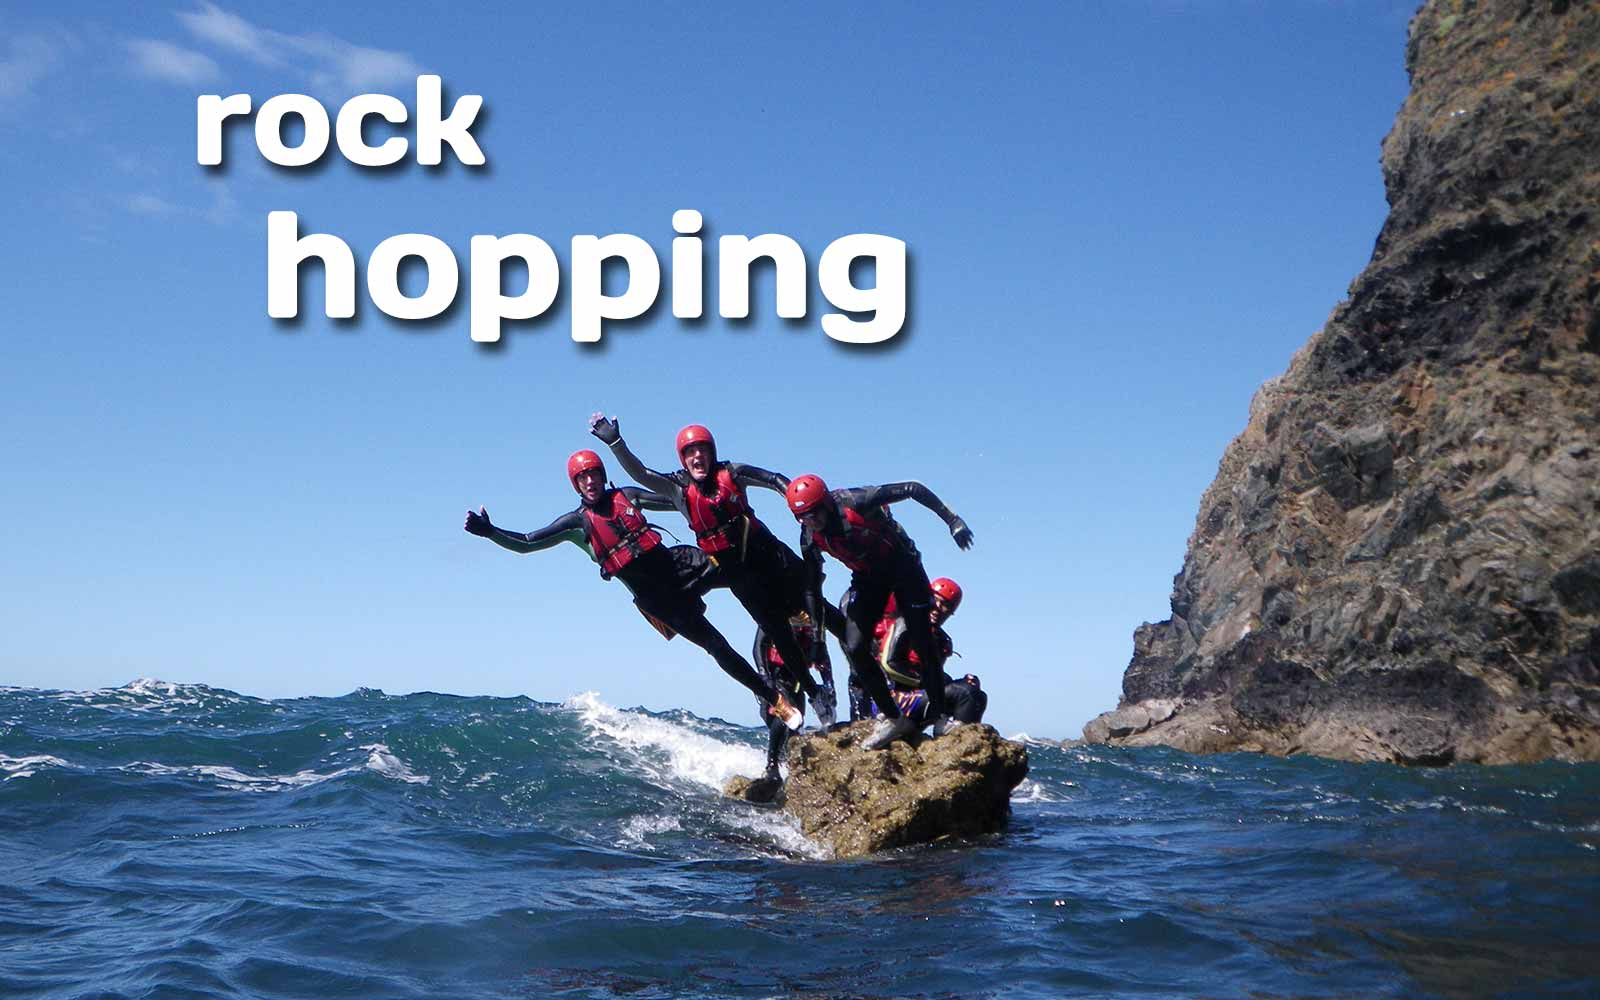 Adult groups leaping from a rock into Wales' Celtic Sea, summer sunshine & blue sky Coasteering